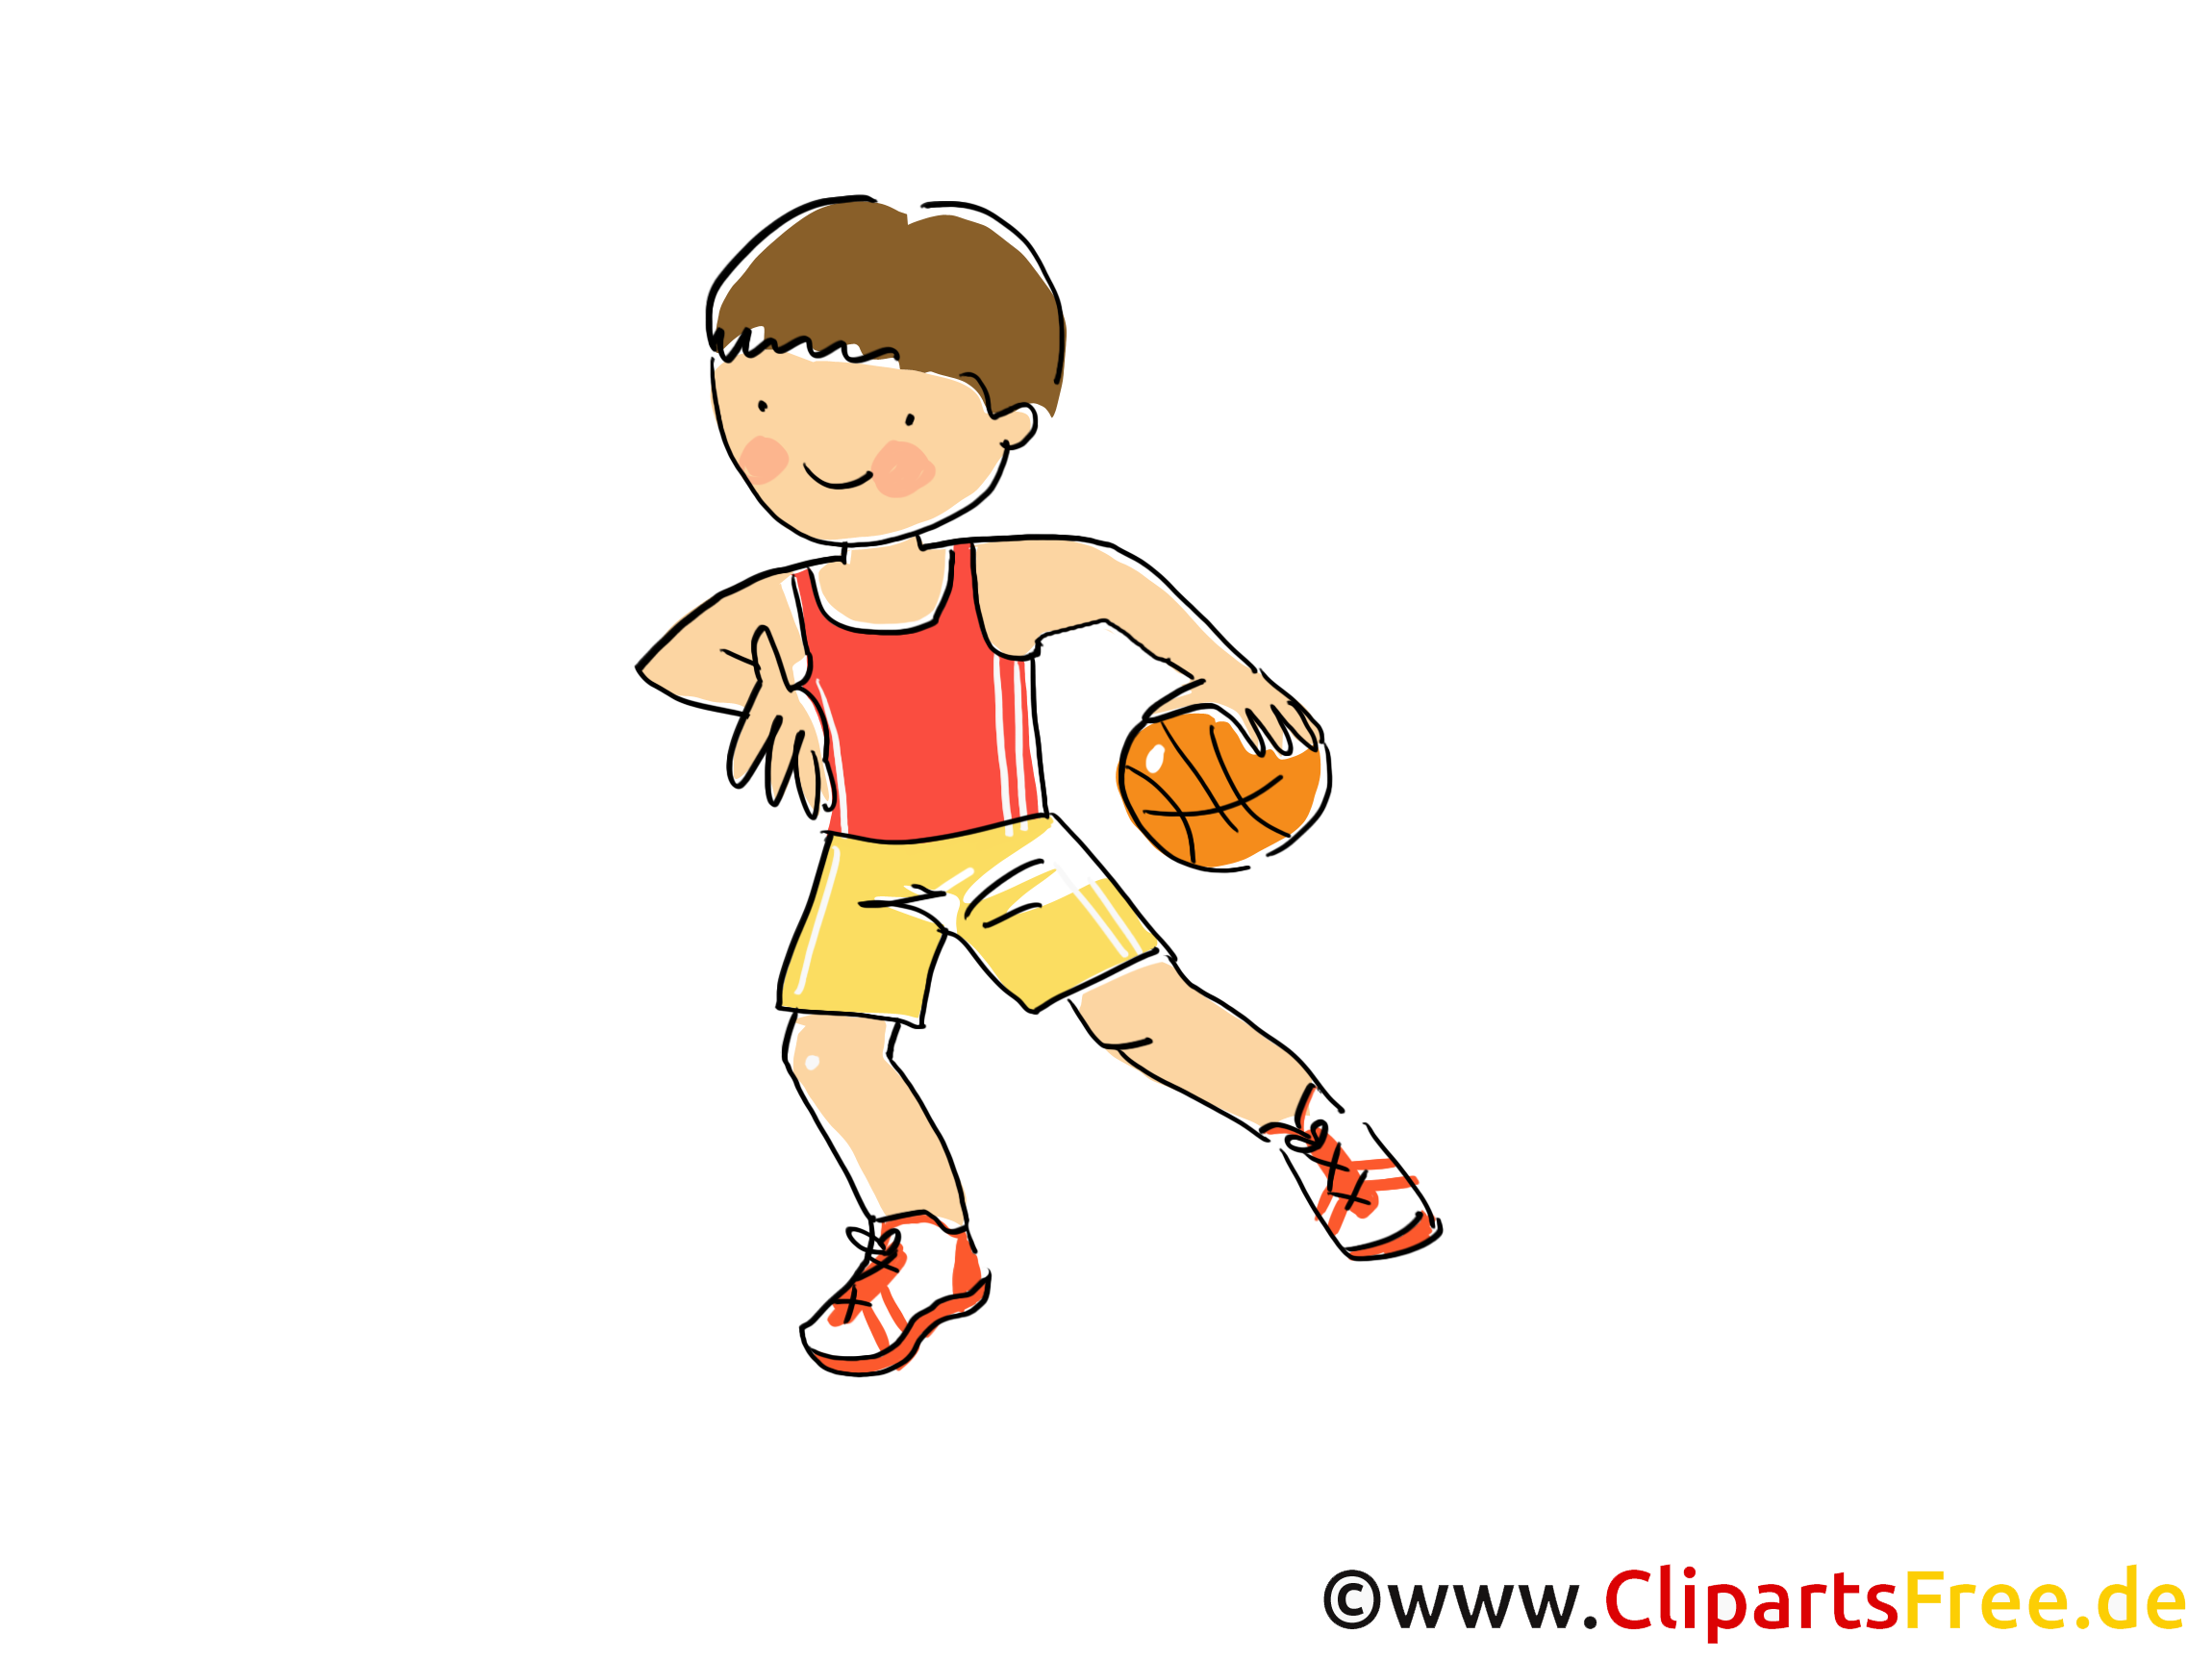 Hand-ball images - Balle dessins gratuits